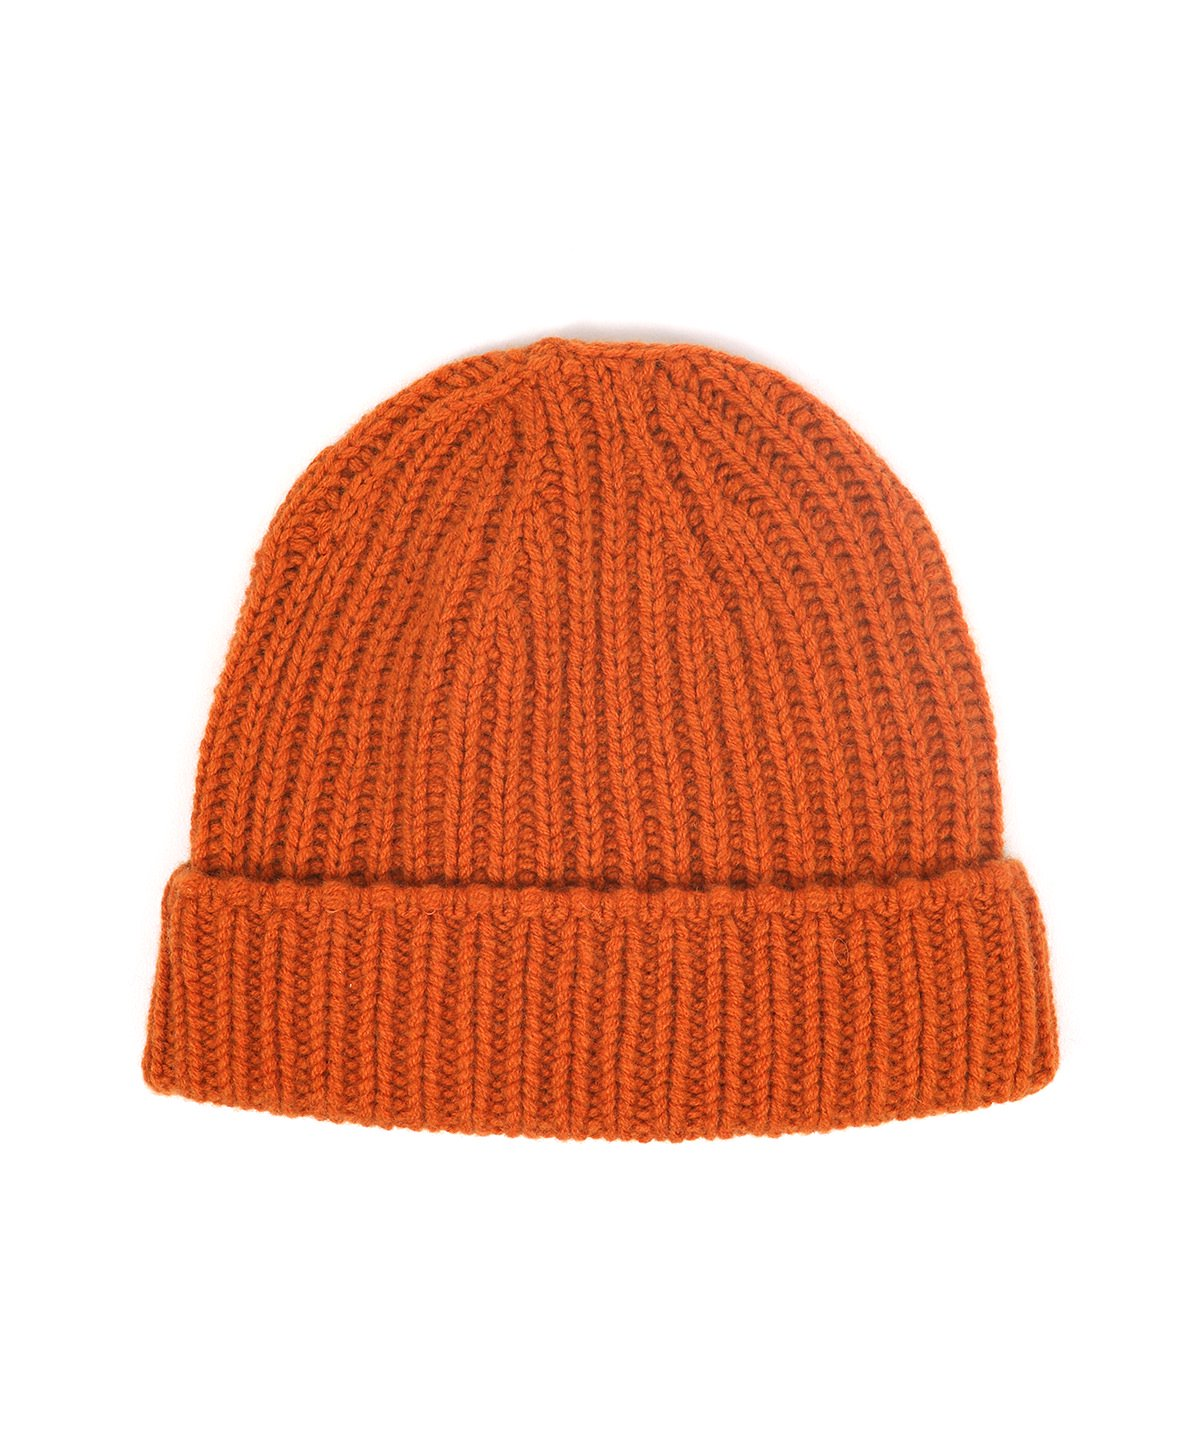 CASHMERE SIMPLE BEANY